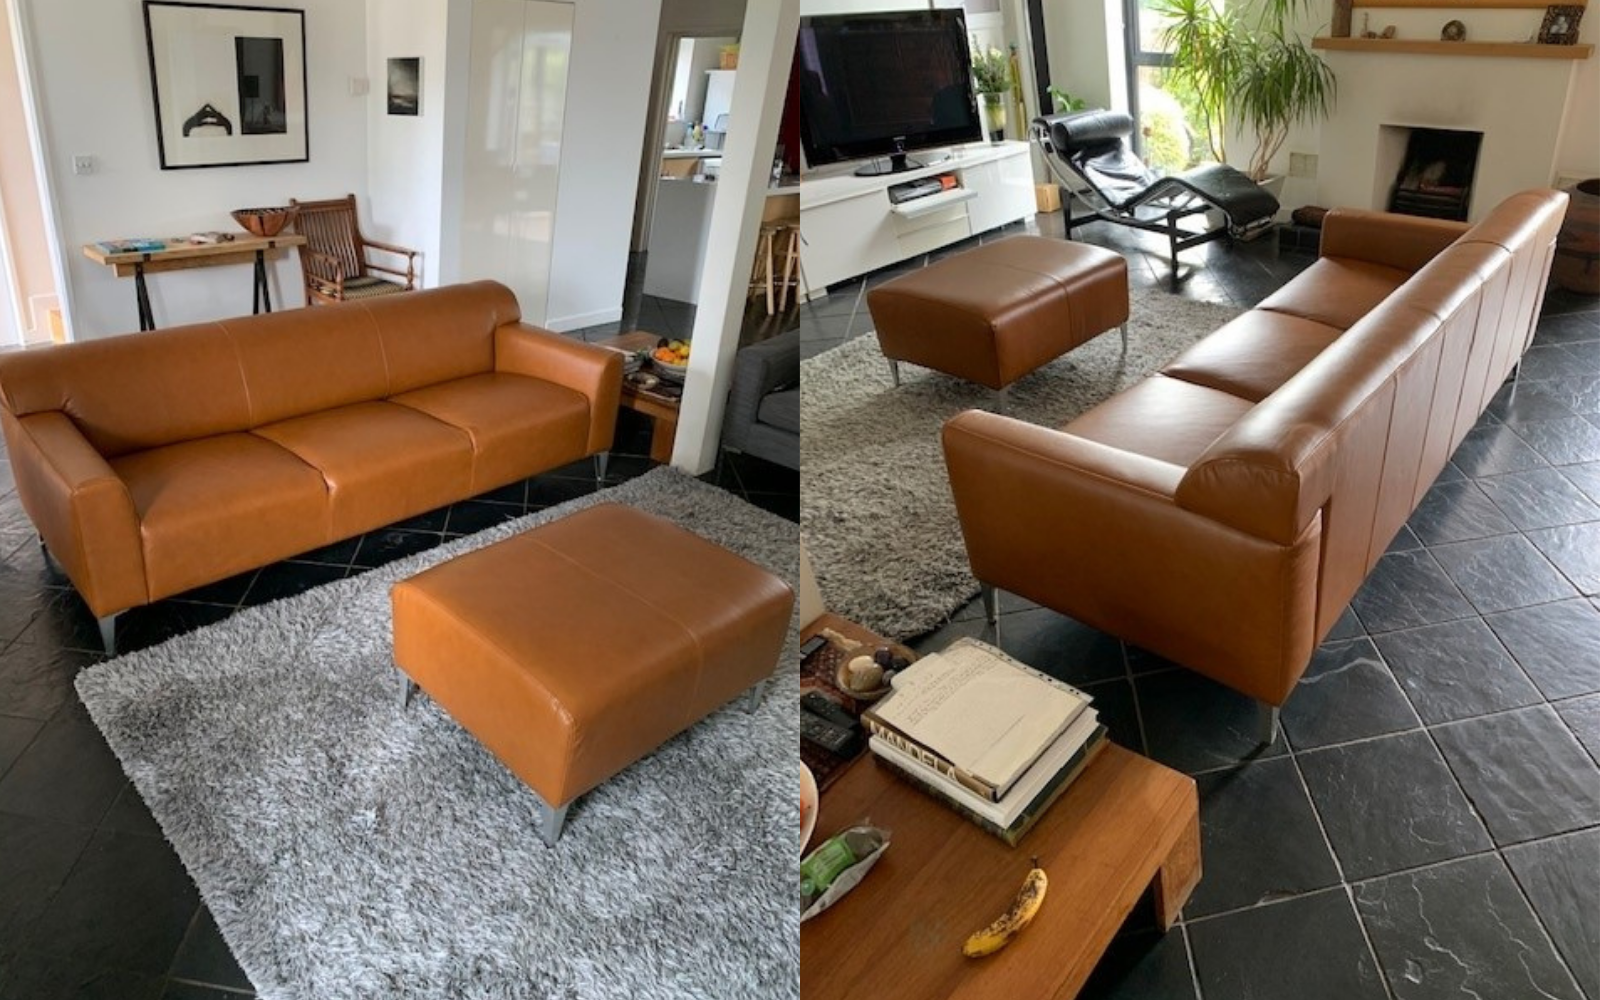 Example of reupholstering furniture, leather sofa and ottoman